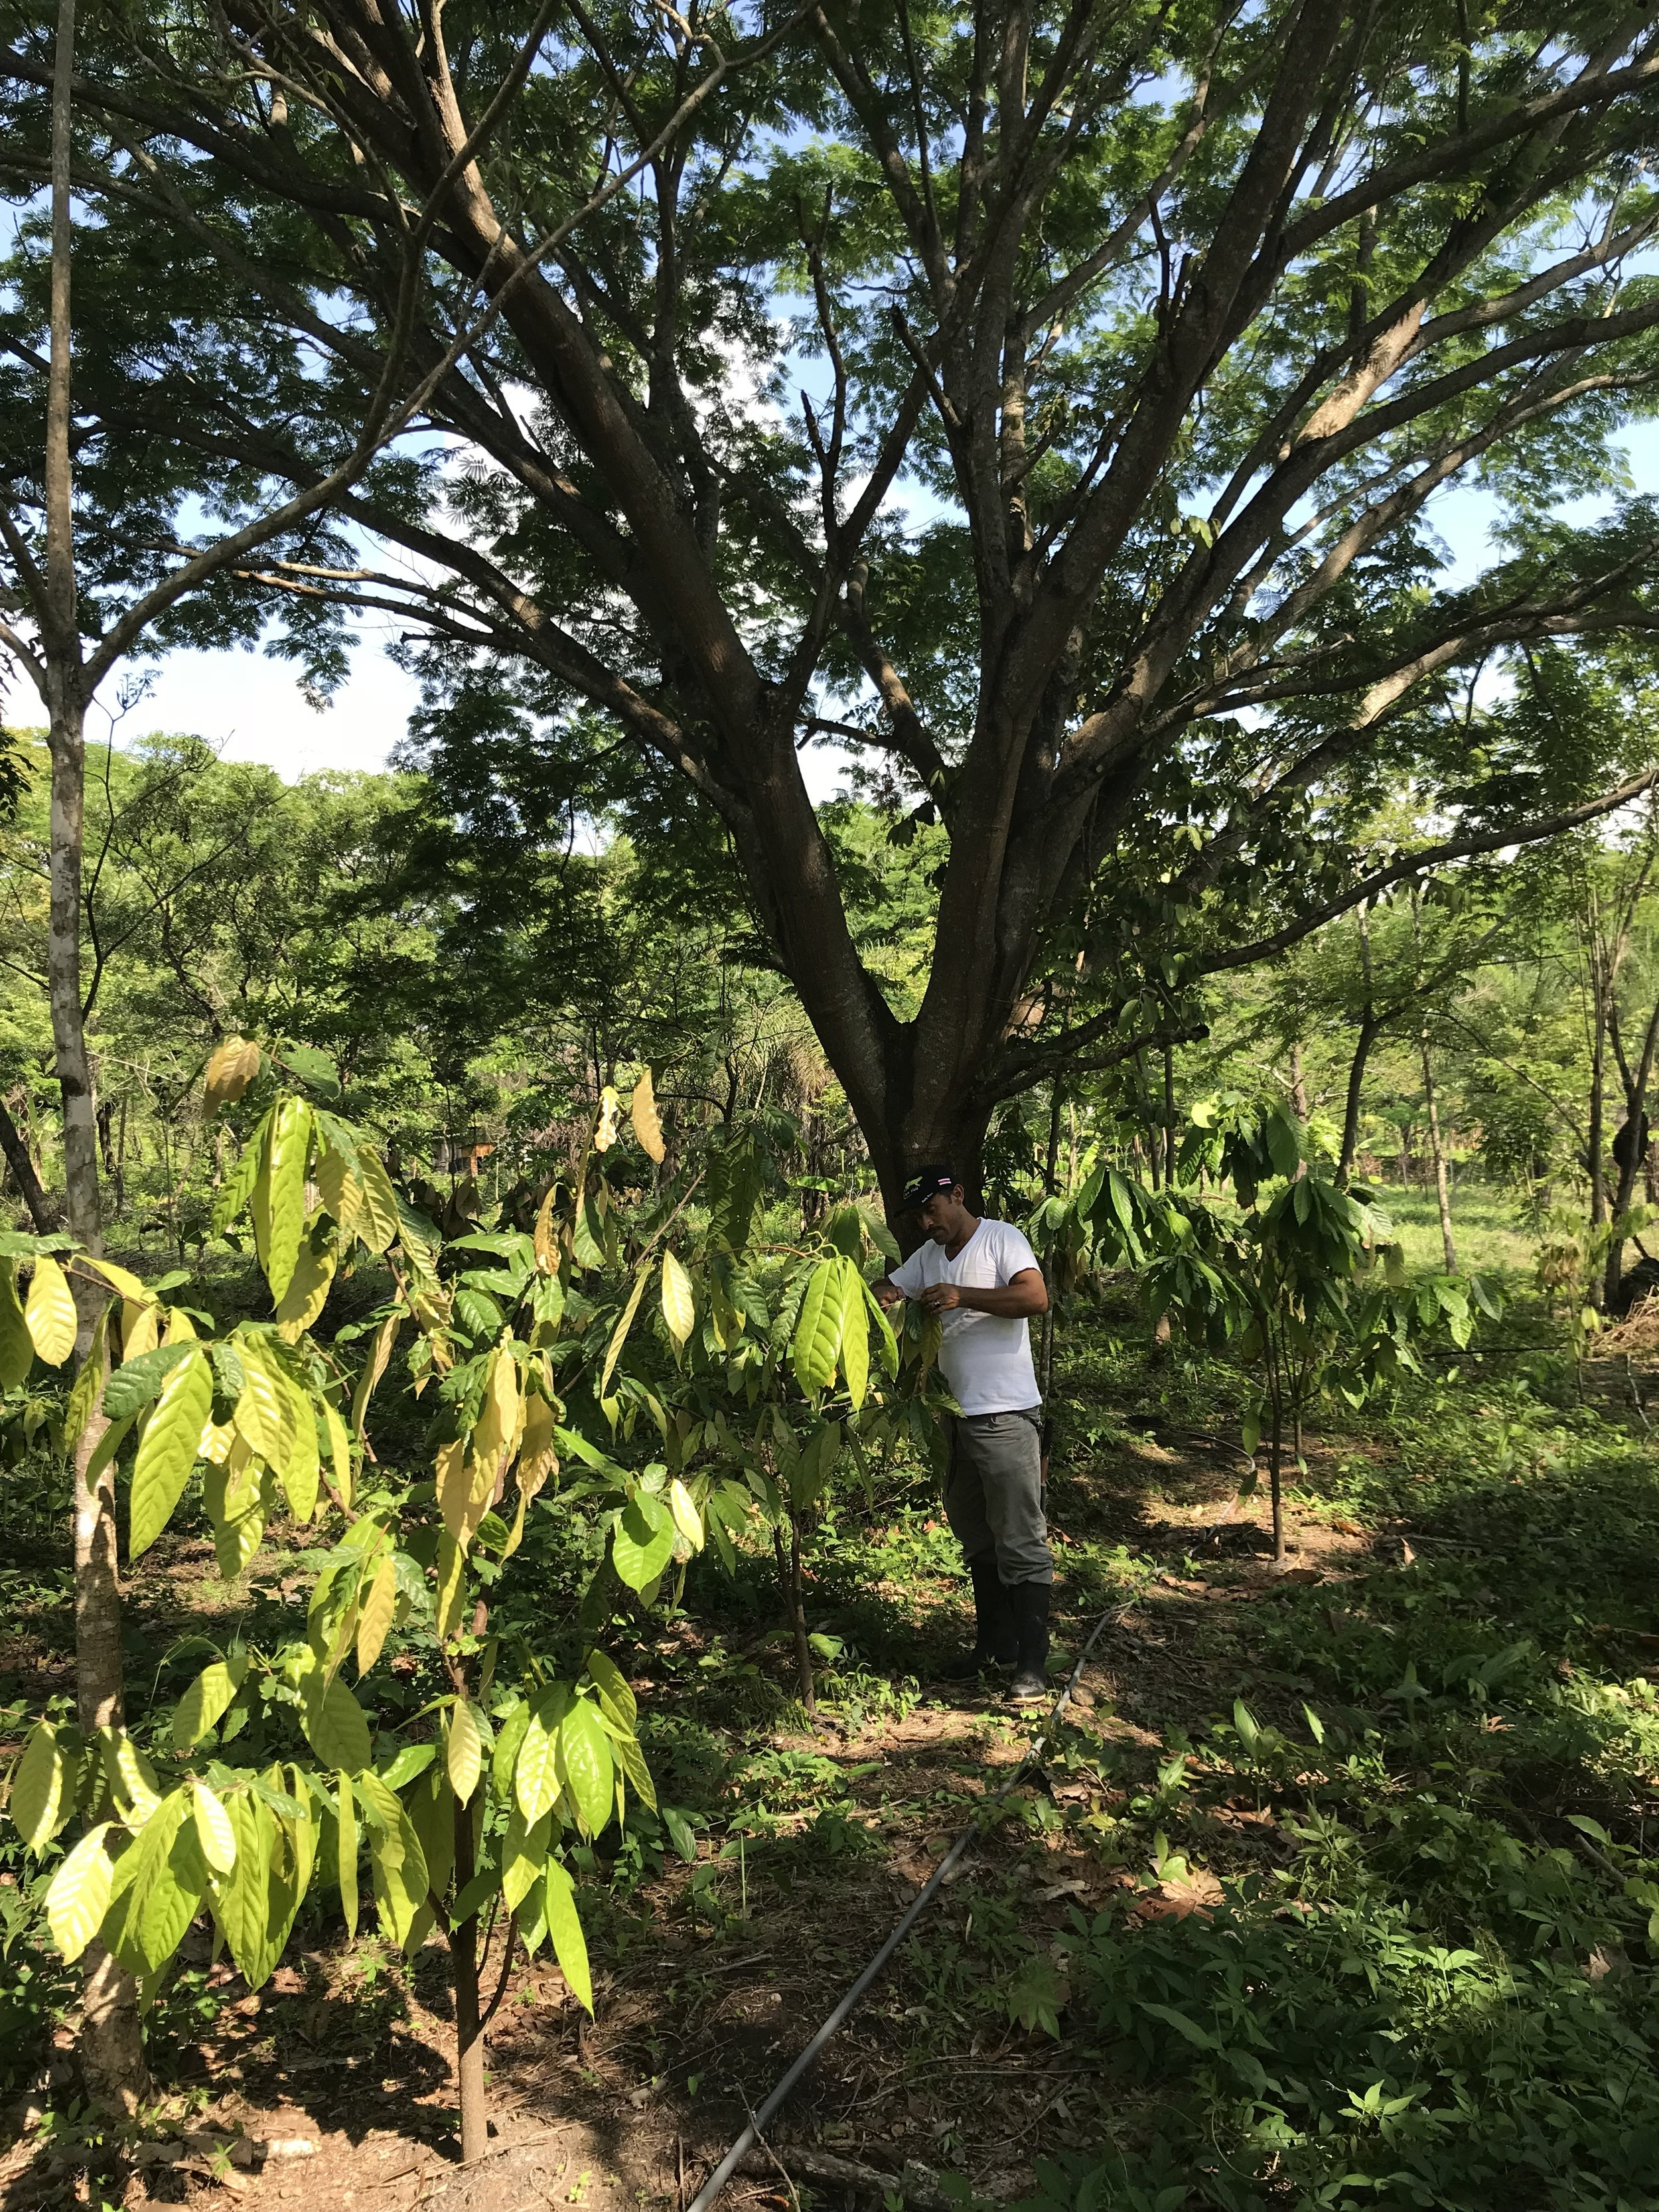 Cacao growing under a shade canopy with Herman pruning a cacao tree